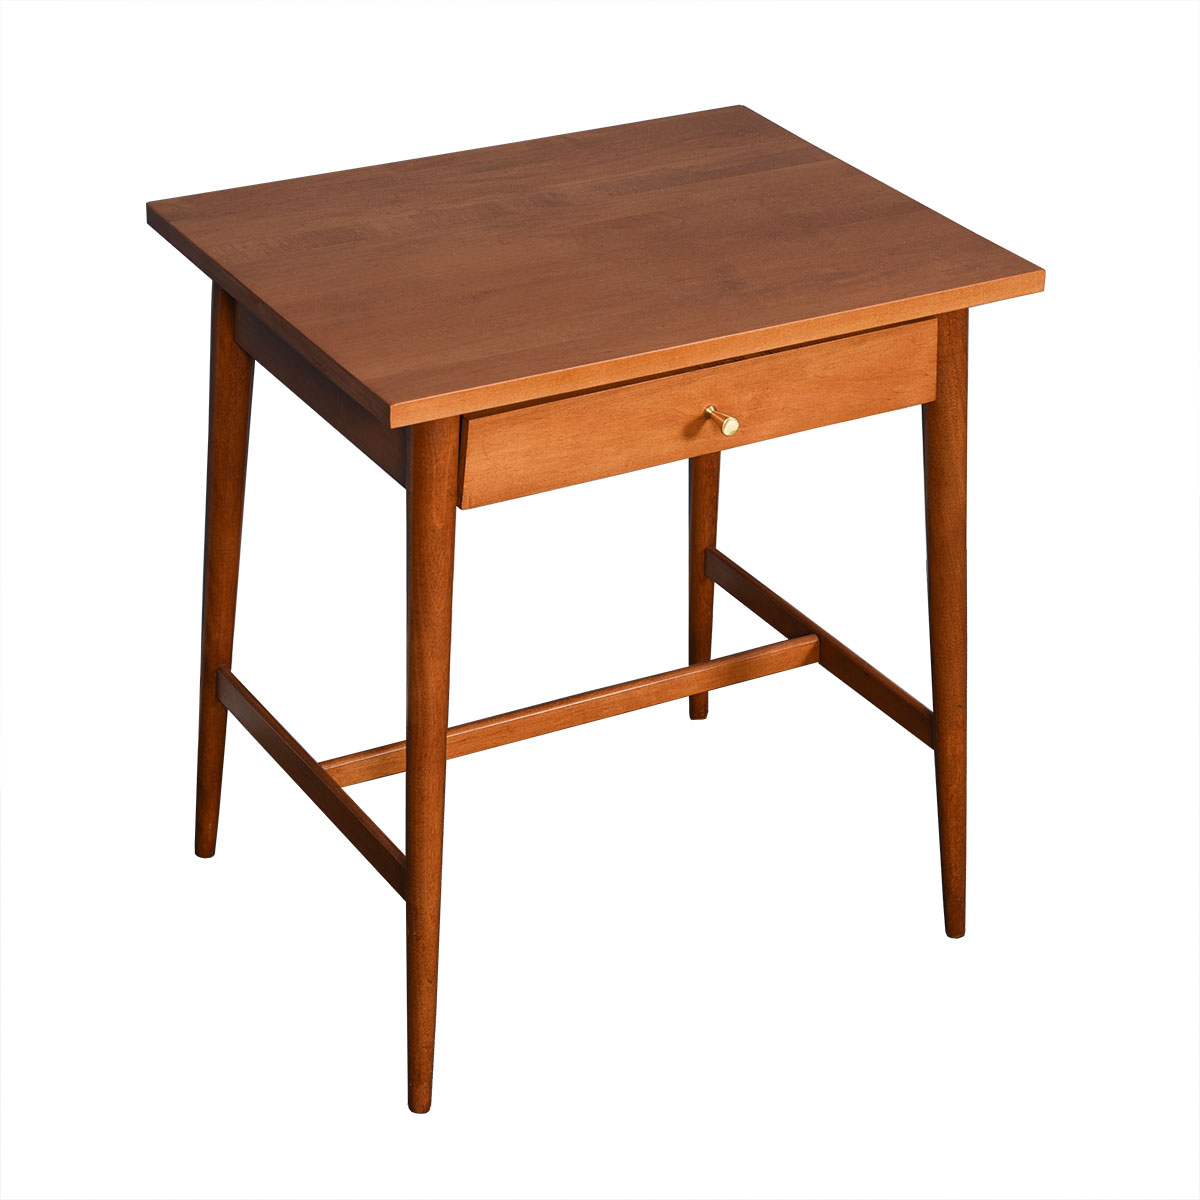 Paul McCobb Planner Group Nightstand / Occasional Table